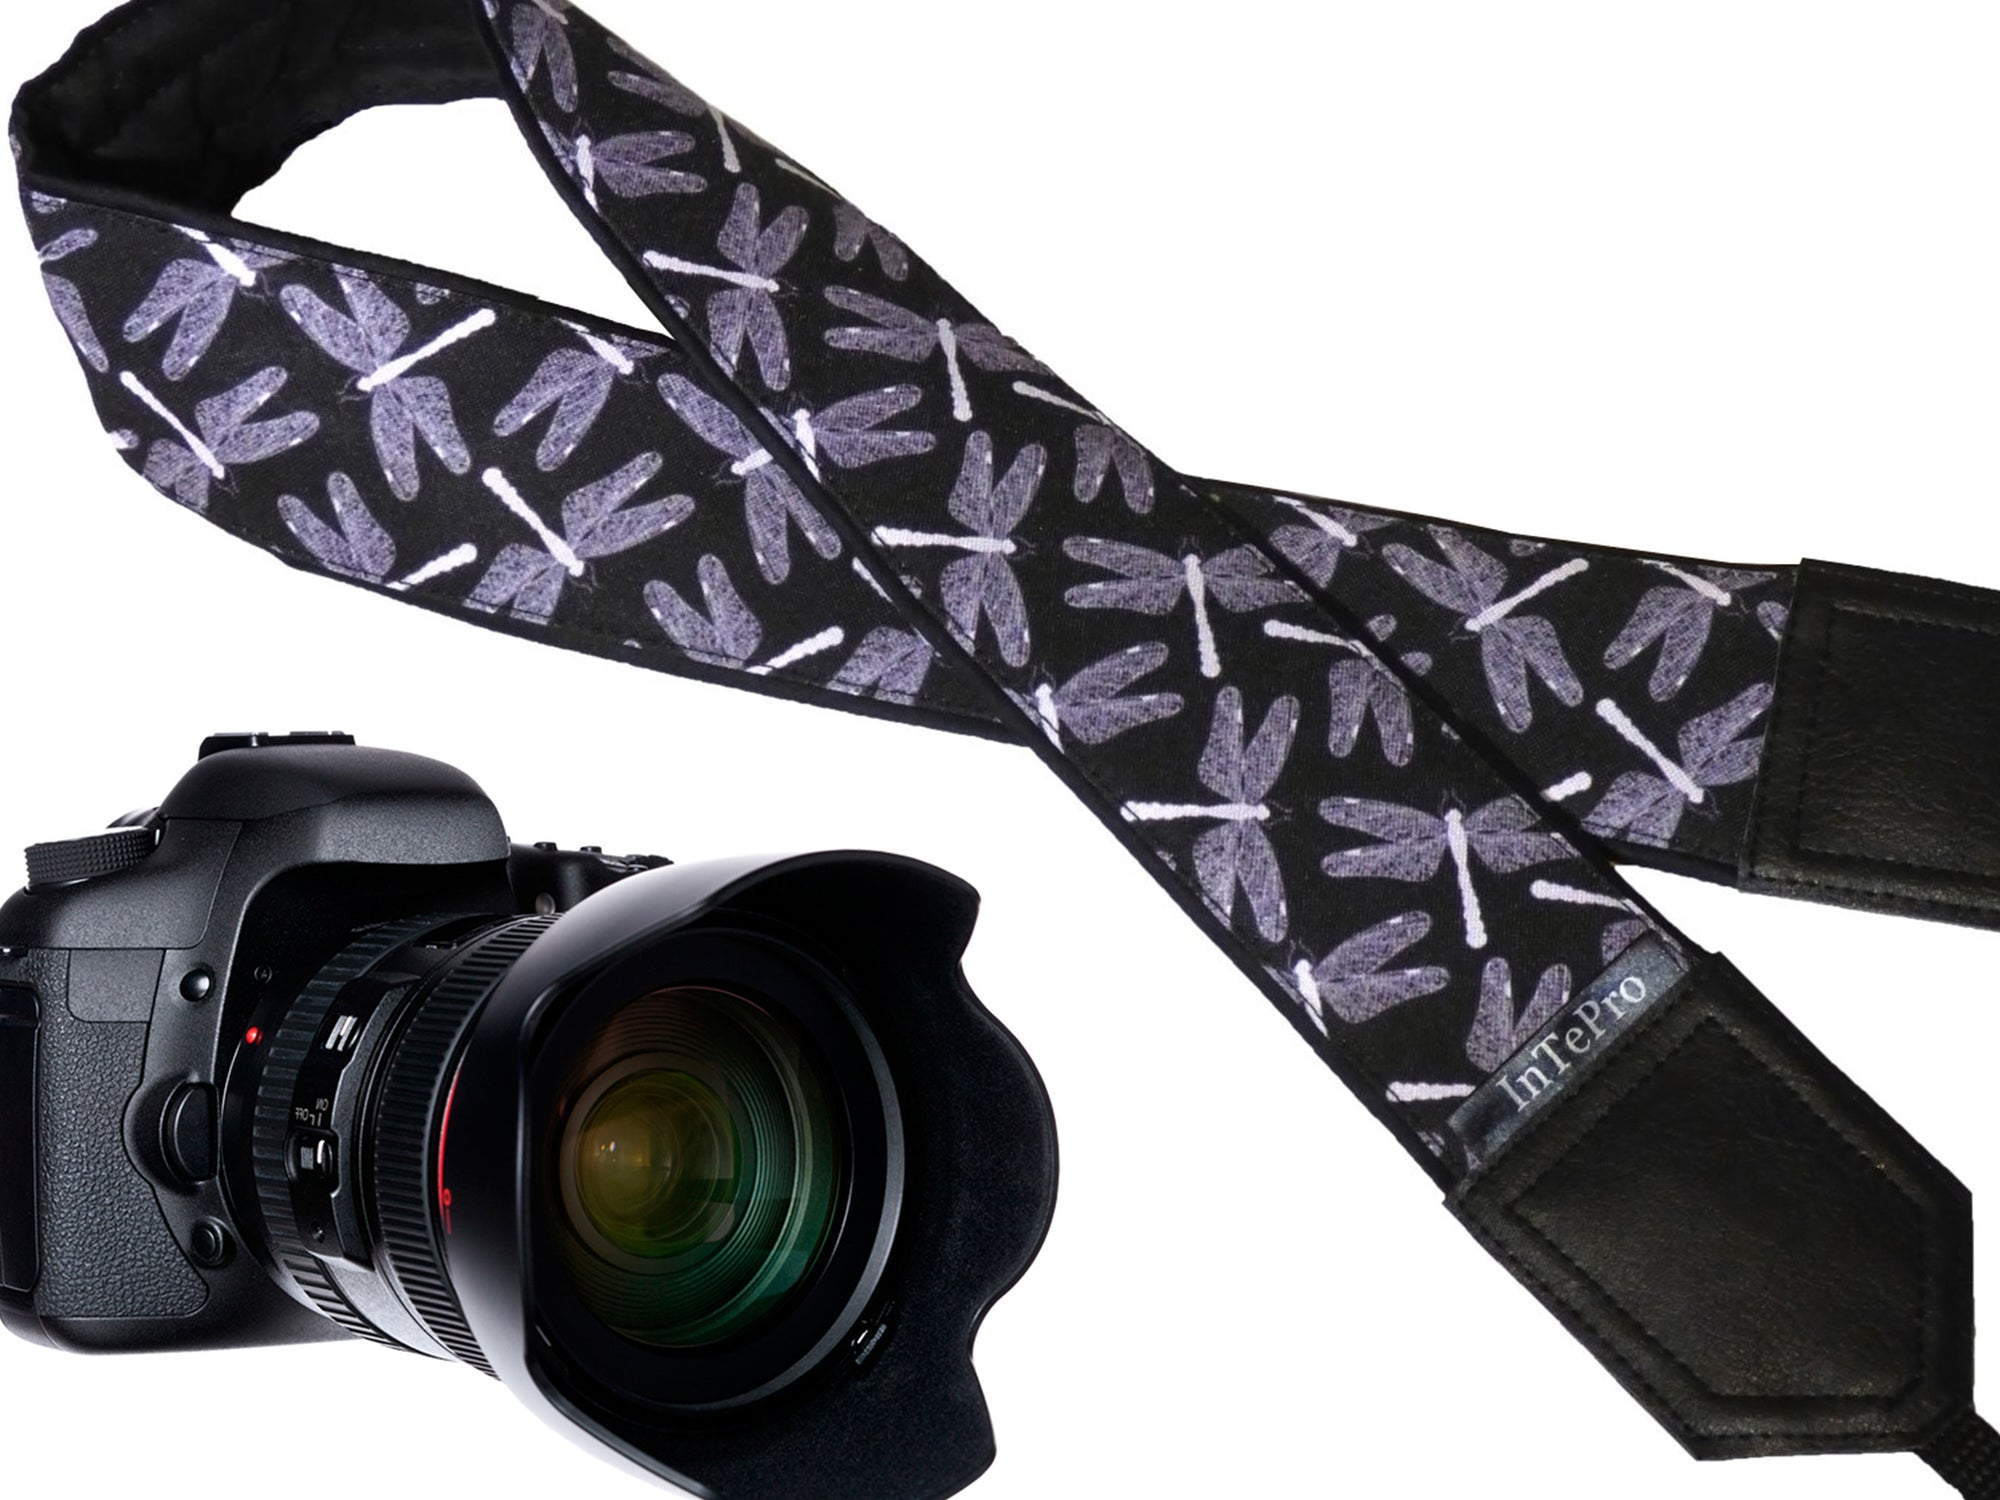 Personalized Camera straps. Dragonflies on black DSLR / SLR Camera Strap. Camera Accessories by InTePro